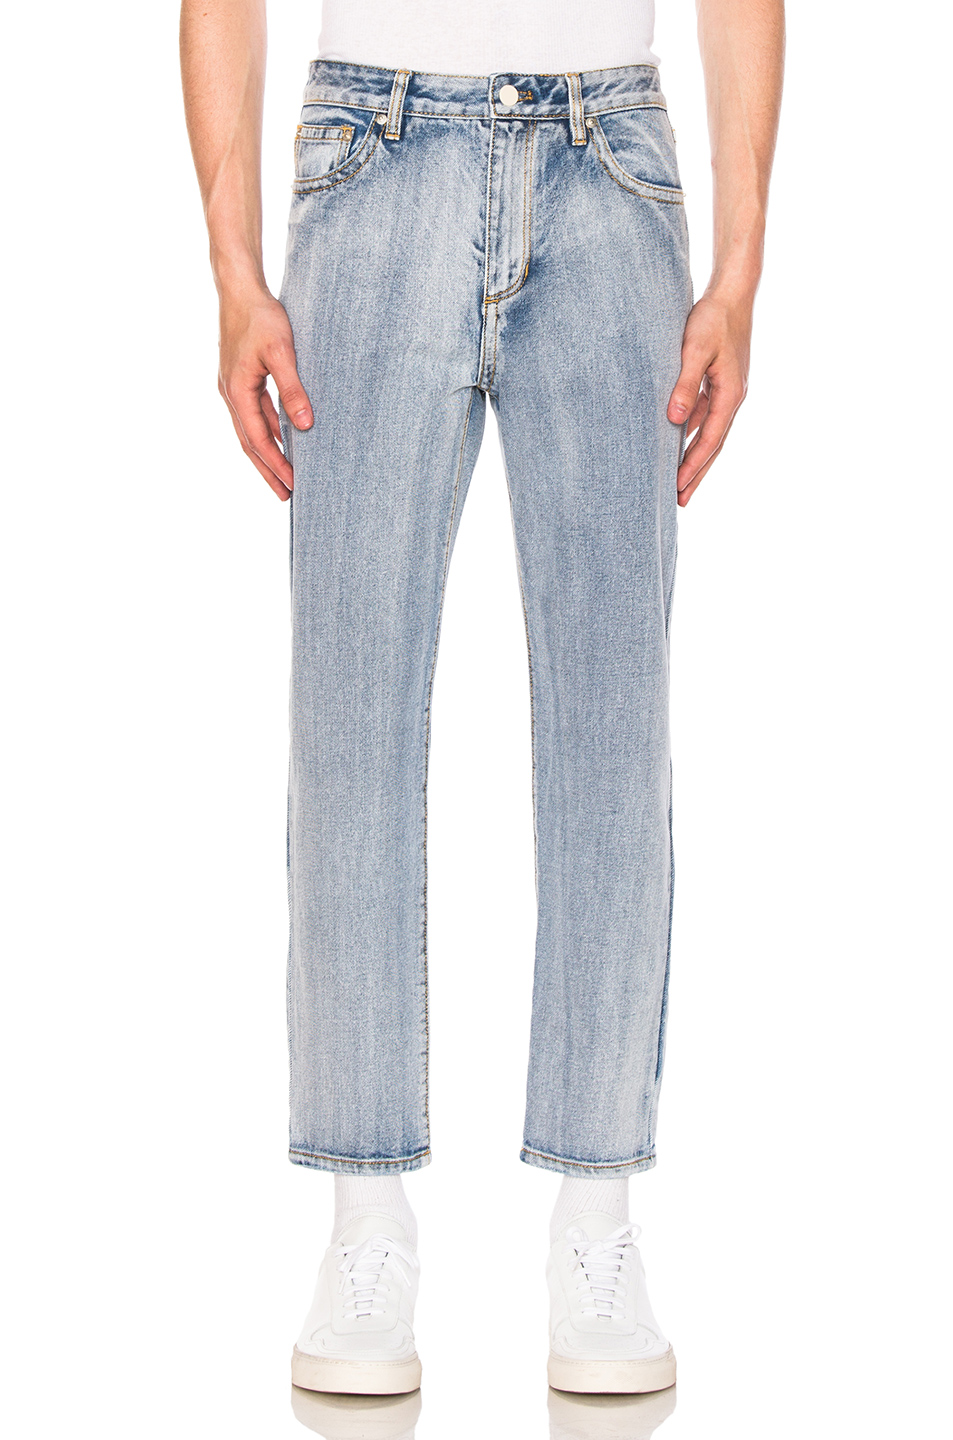 3.1 phillip lim Washed Denim Trousers in Blue